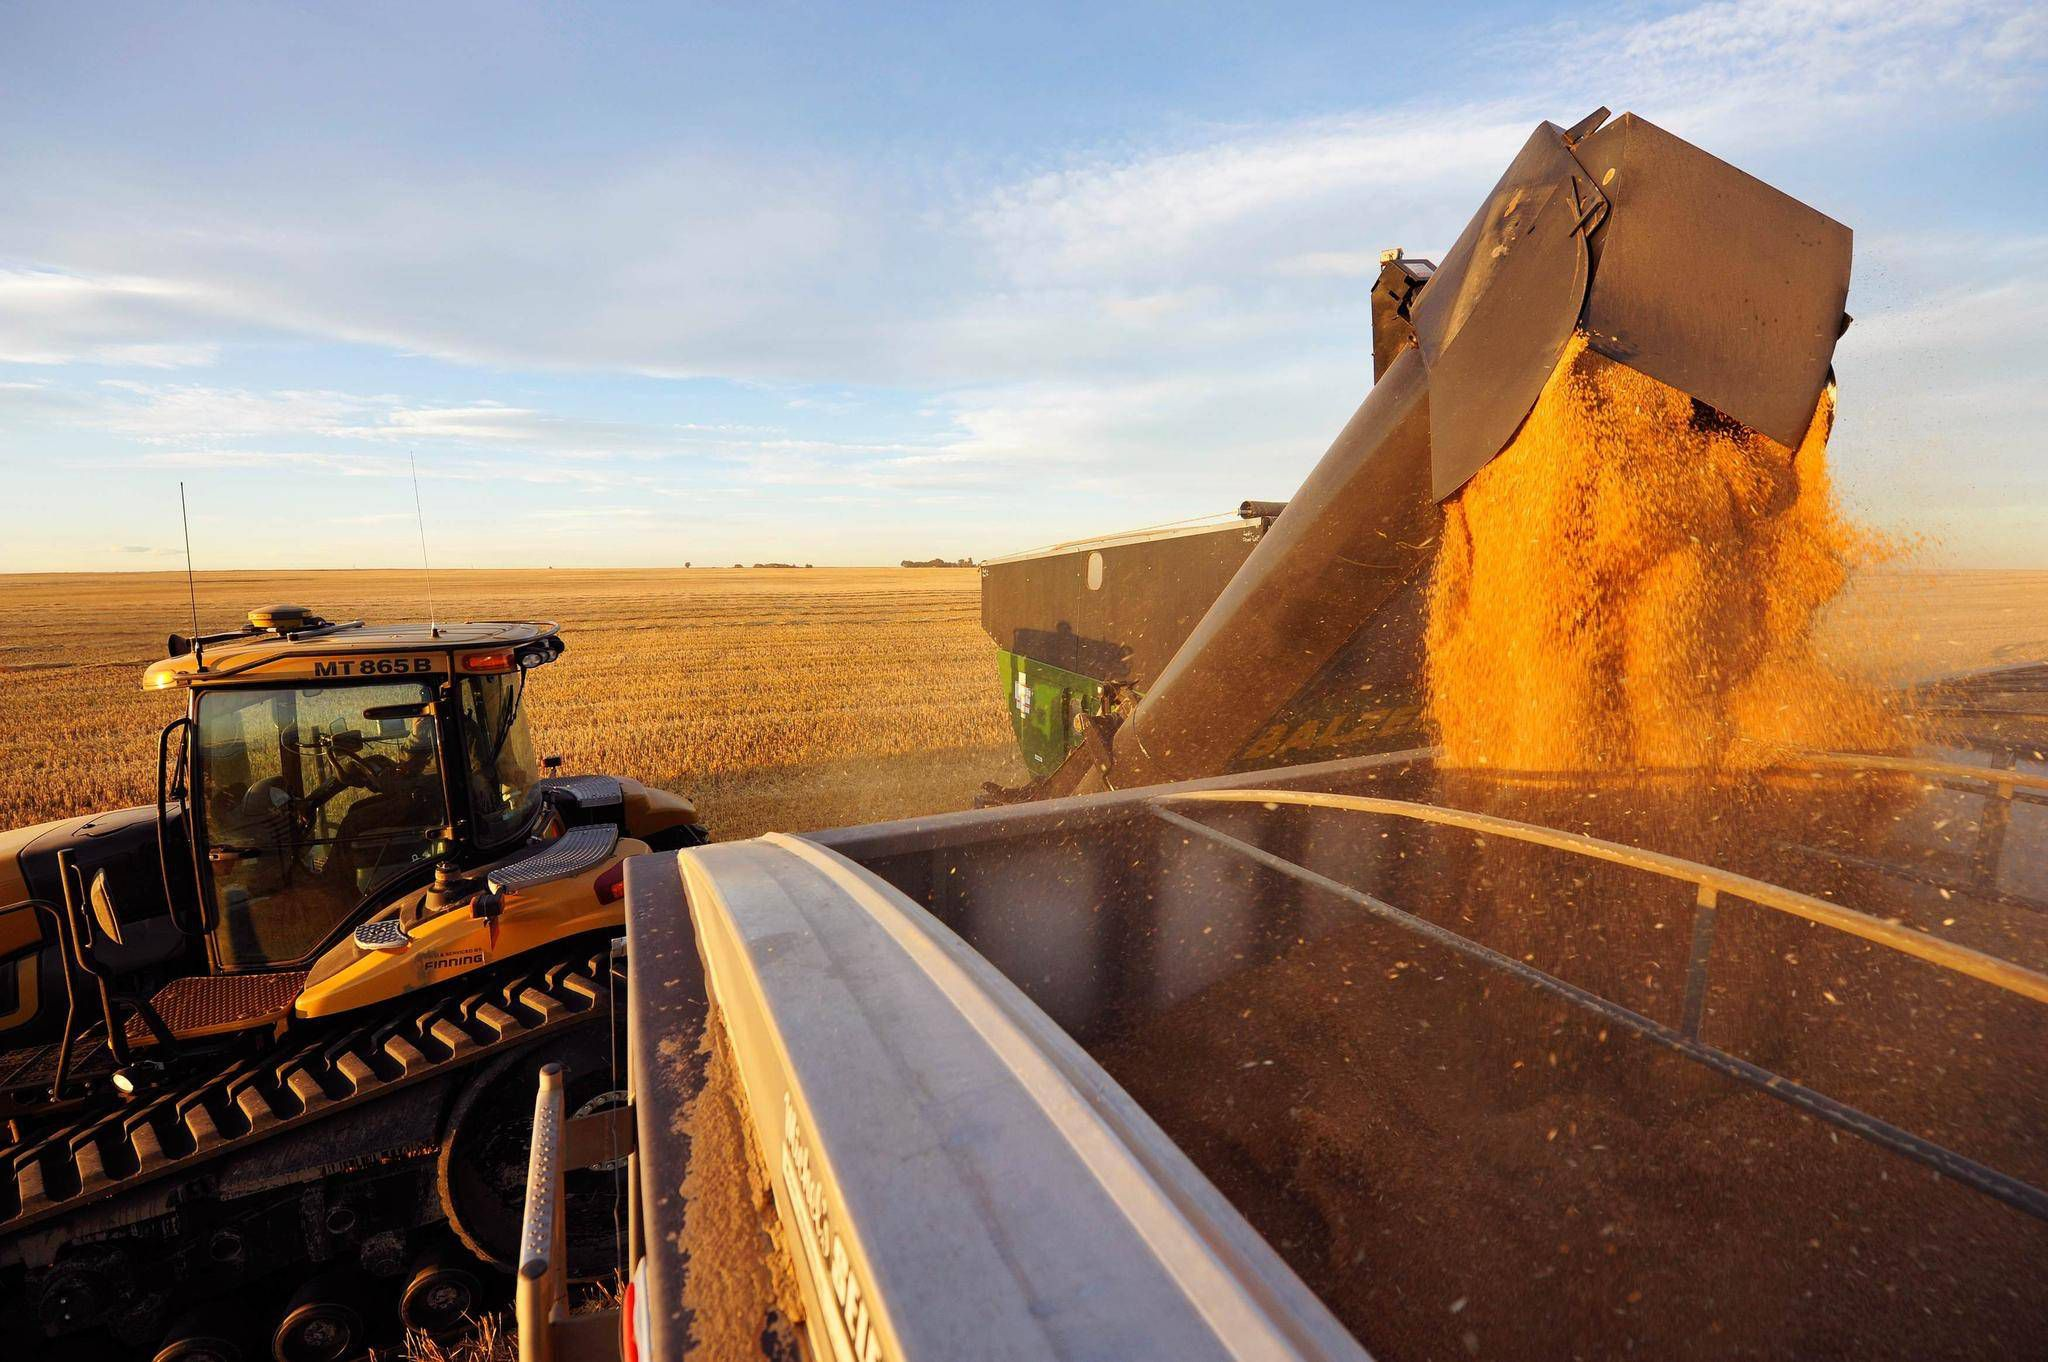 With natural capital and trust, Canada can become an agrifood powerhouse